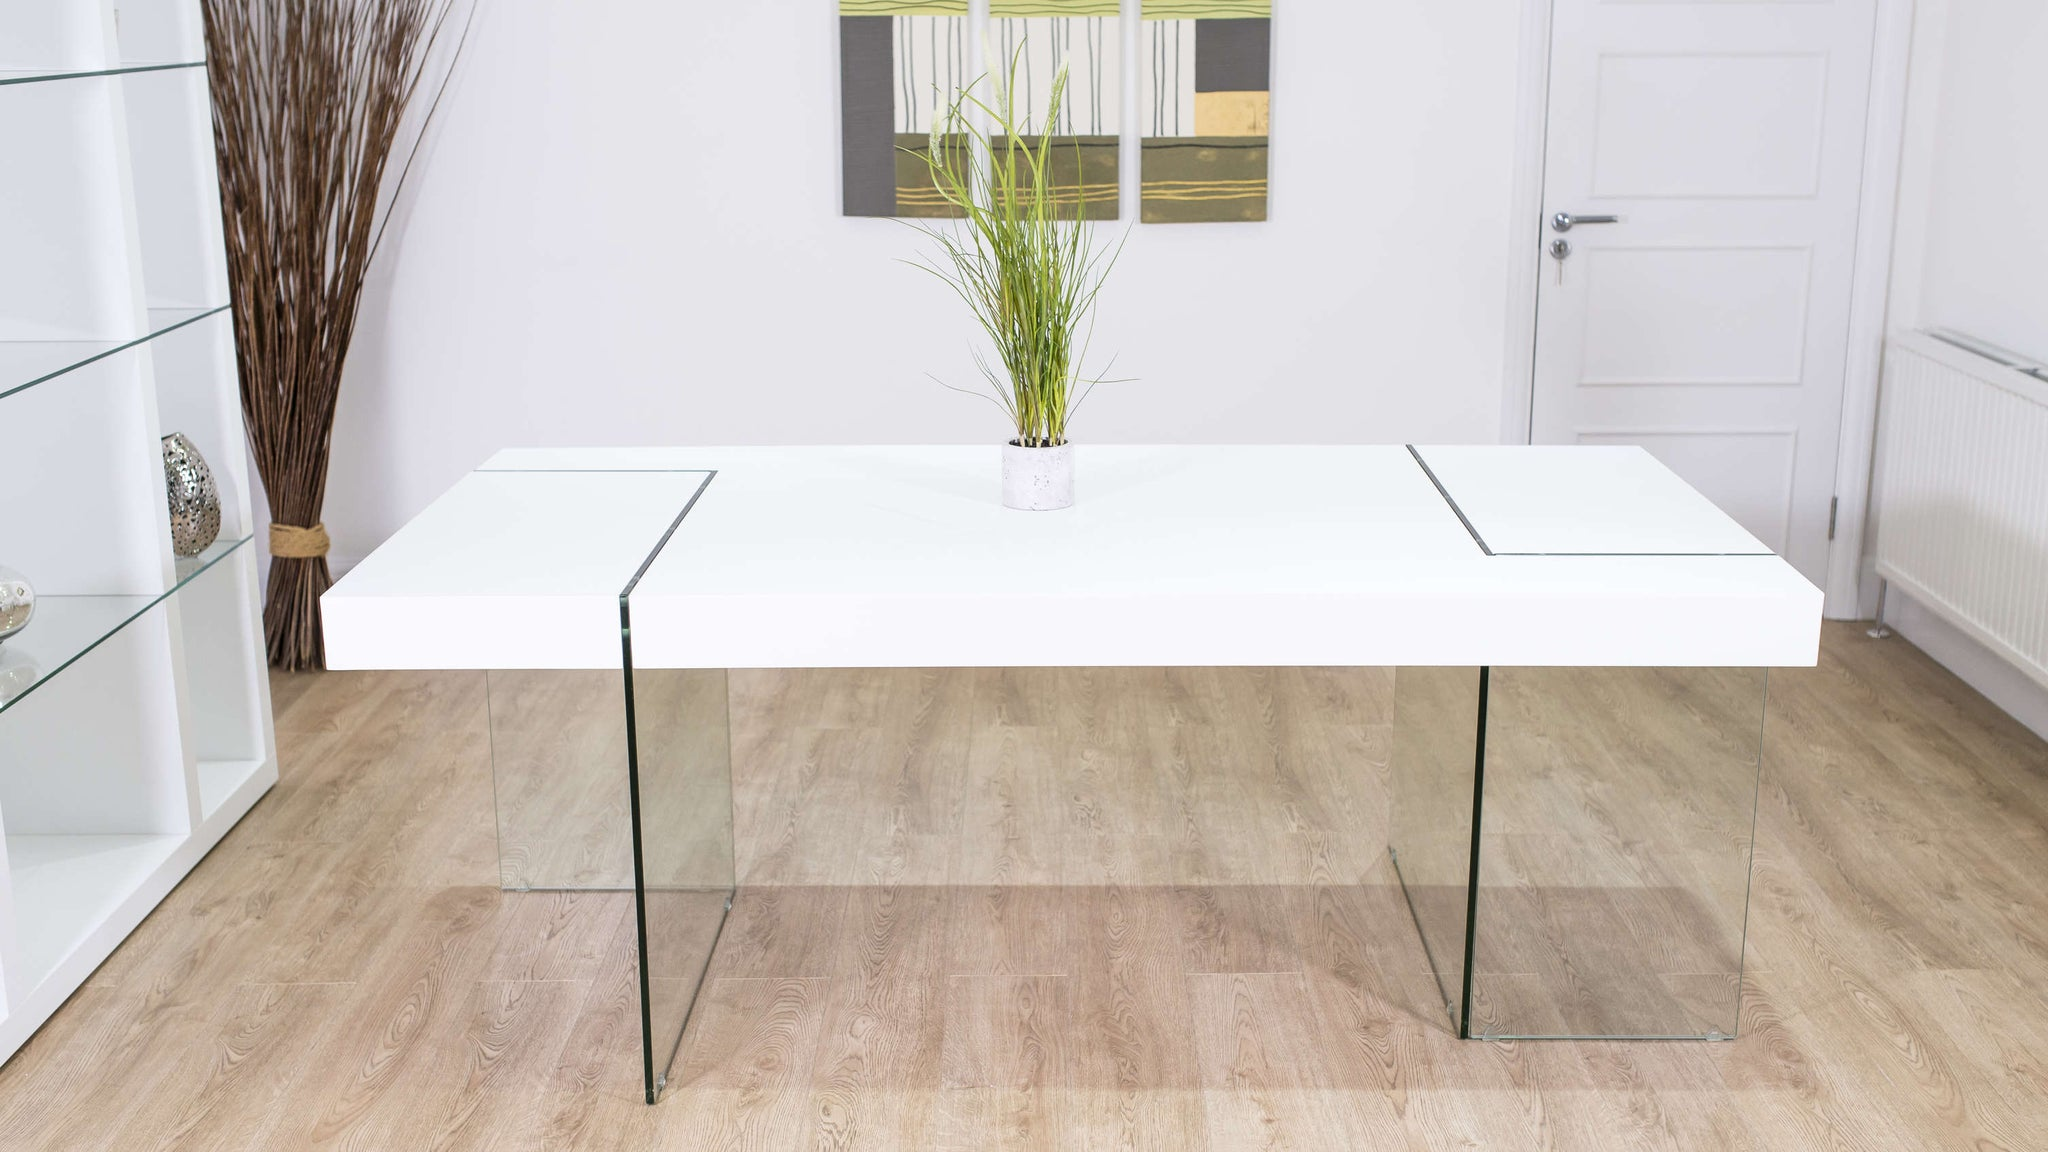 Stylish 6 Seater White Wood and Glass Dining Table